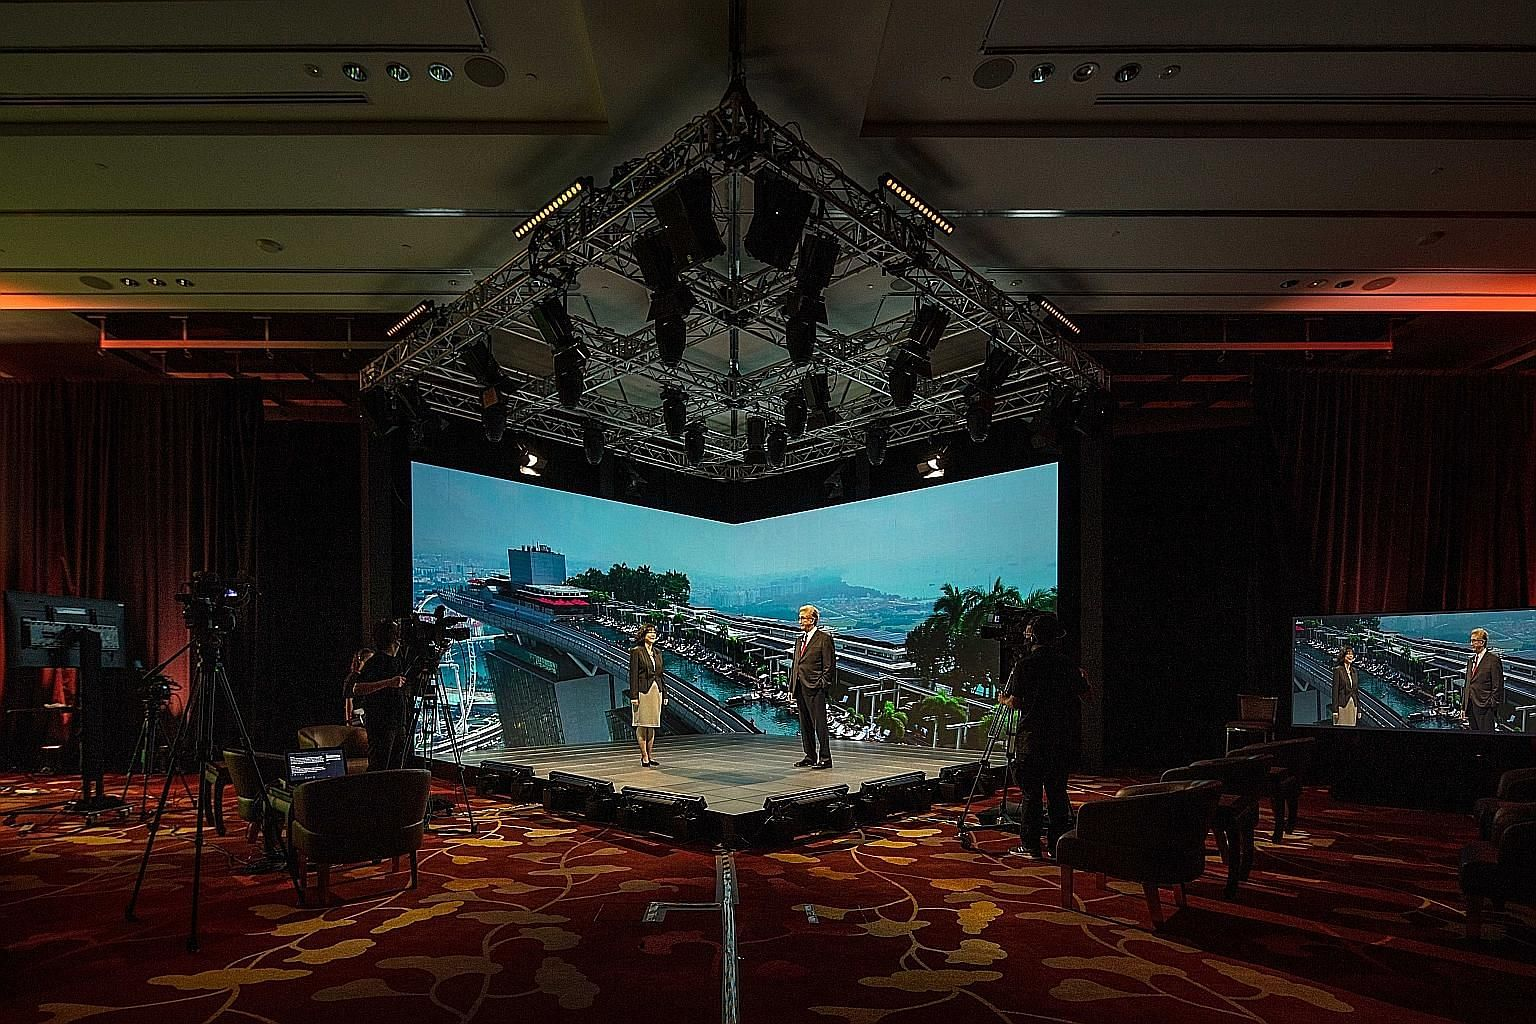 """Speakers will be able to go """"live"""" on stage despite Covid-19 travel restrictions at Marina Bay Sands' new hybrid event broadcast studio. The state-of-the-art studio has hologram functionalities that can beam presenters onto the stage to stand alongsi"""